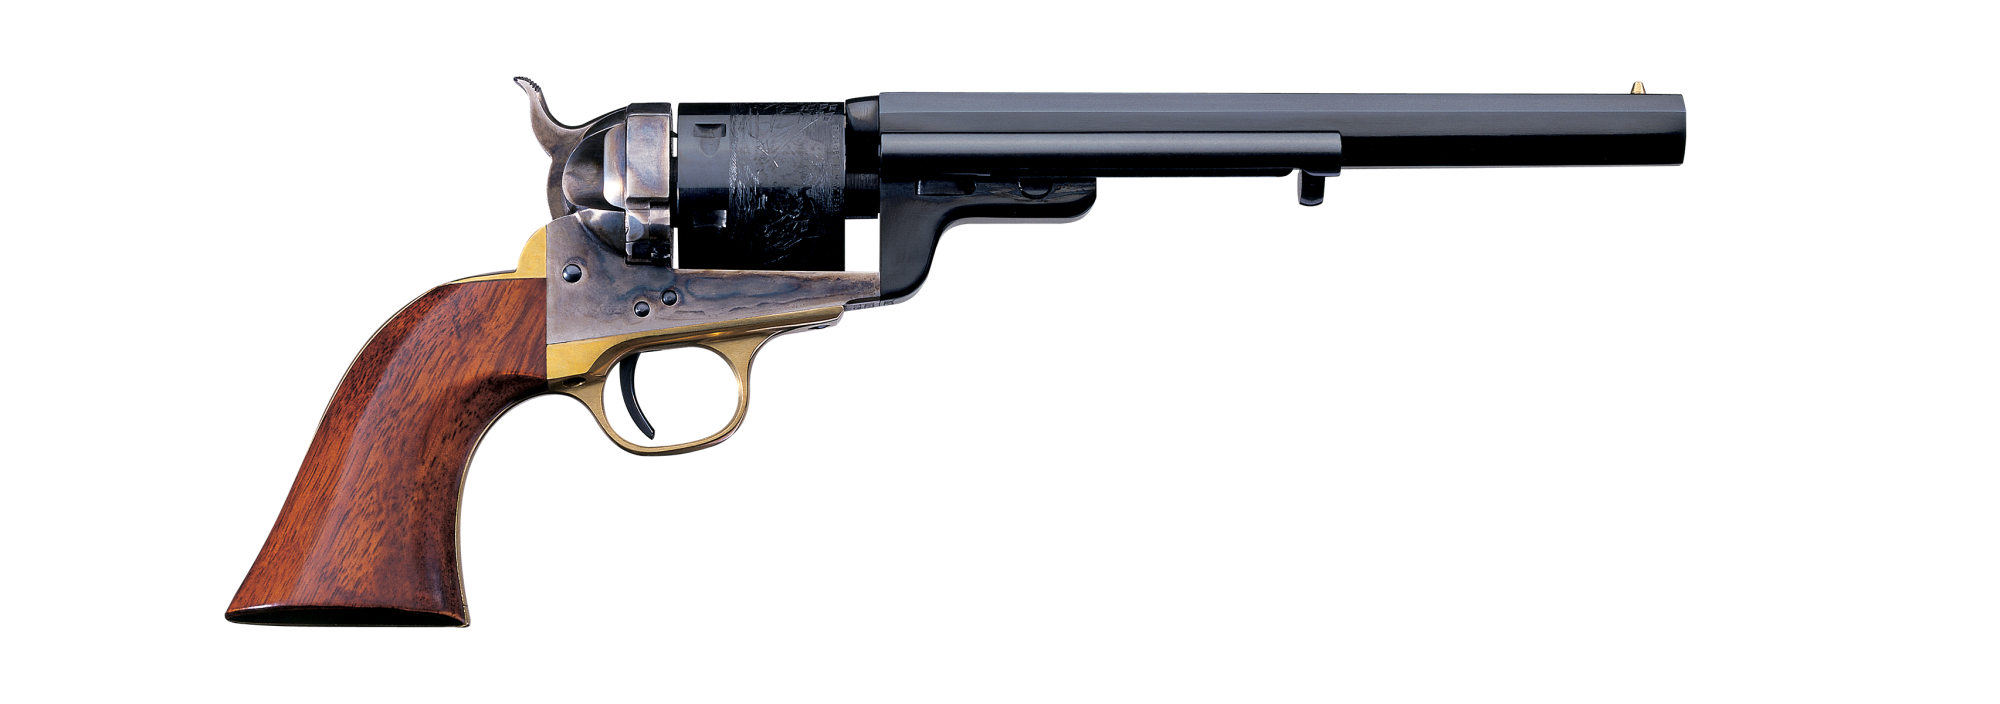 Cowboy revolver png. Army conversion navy and